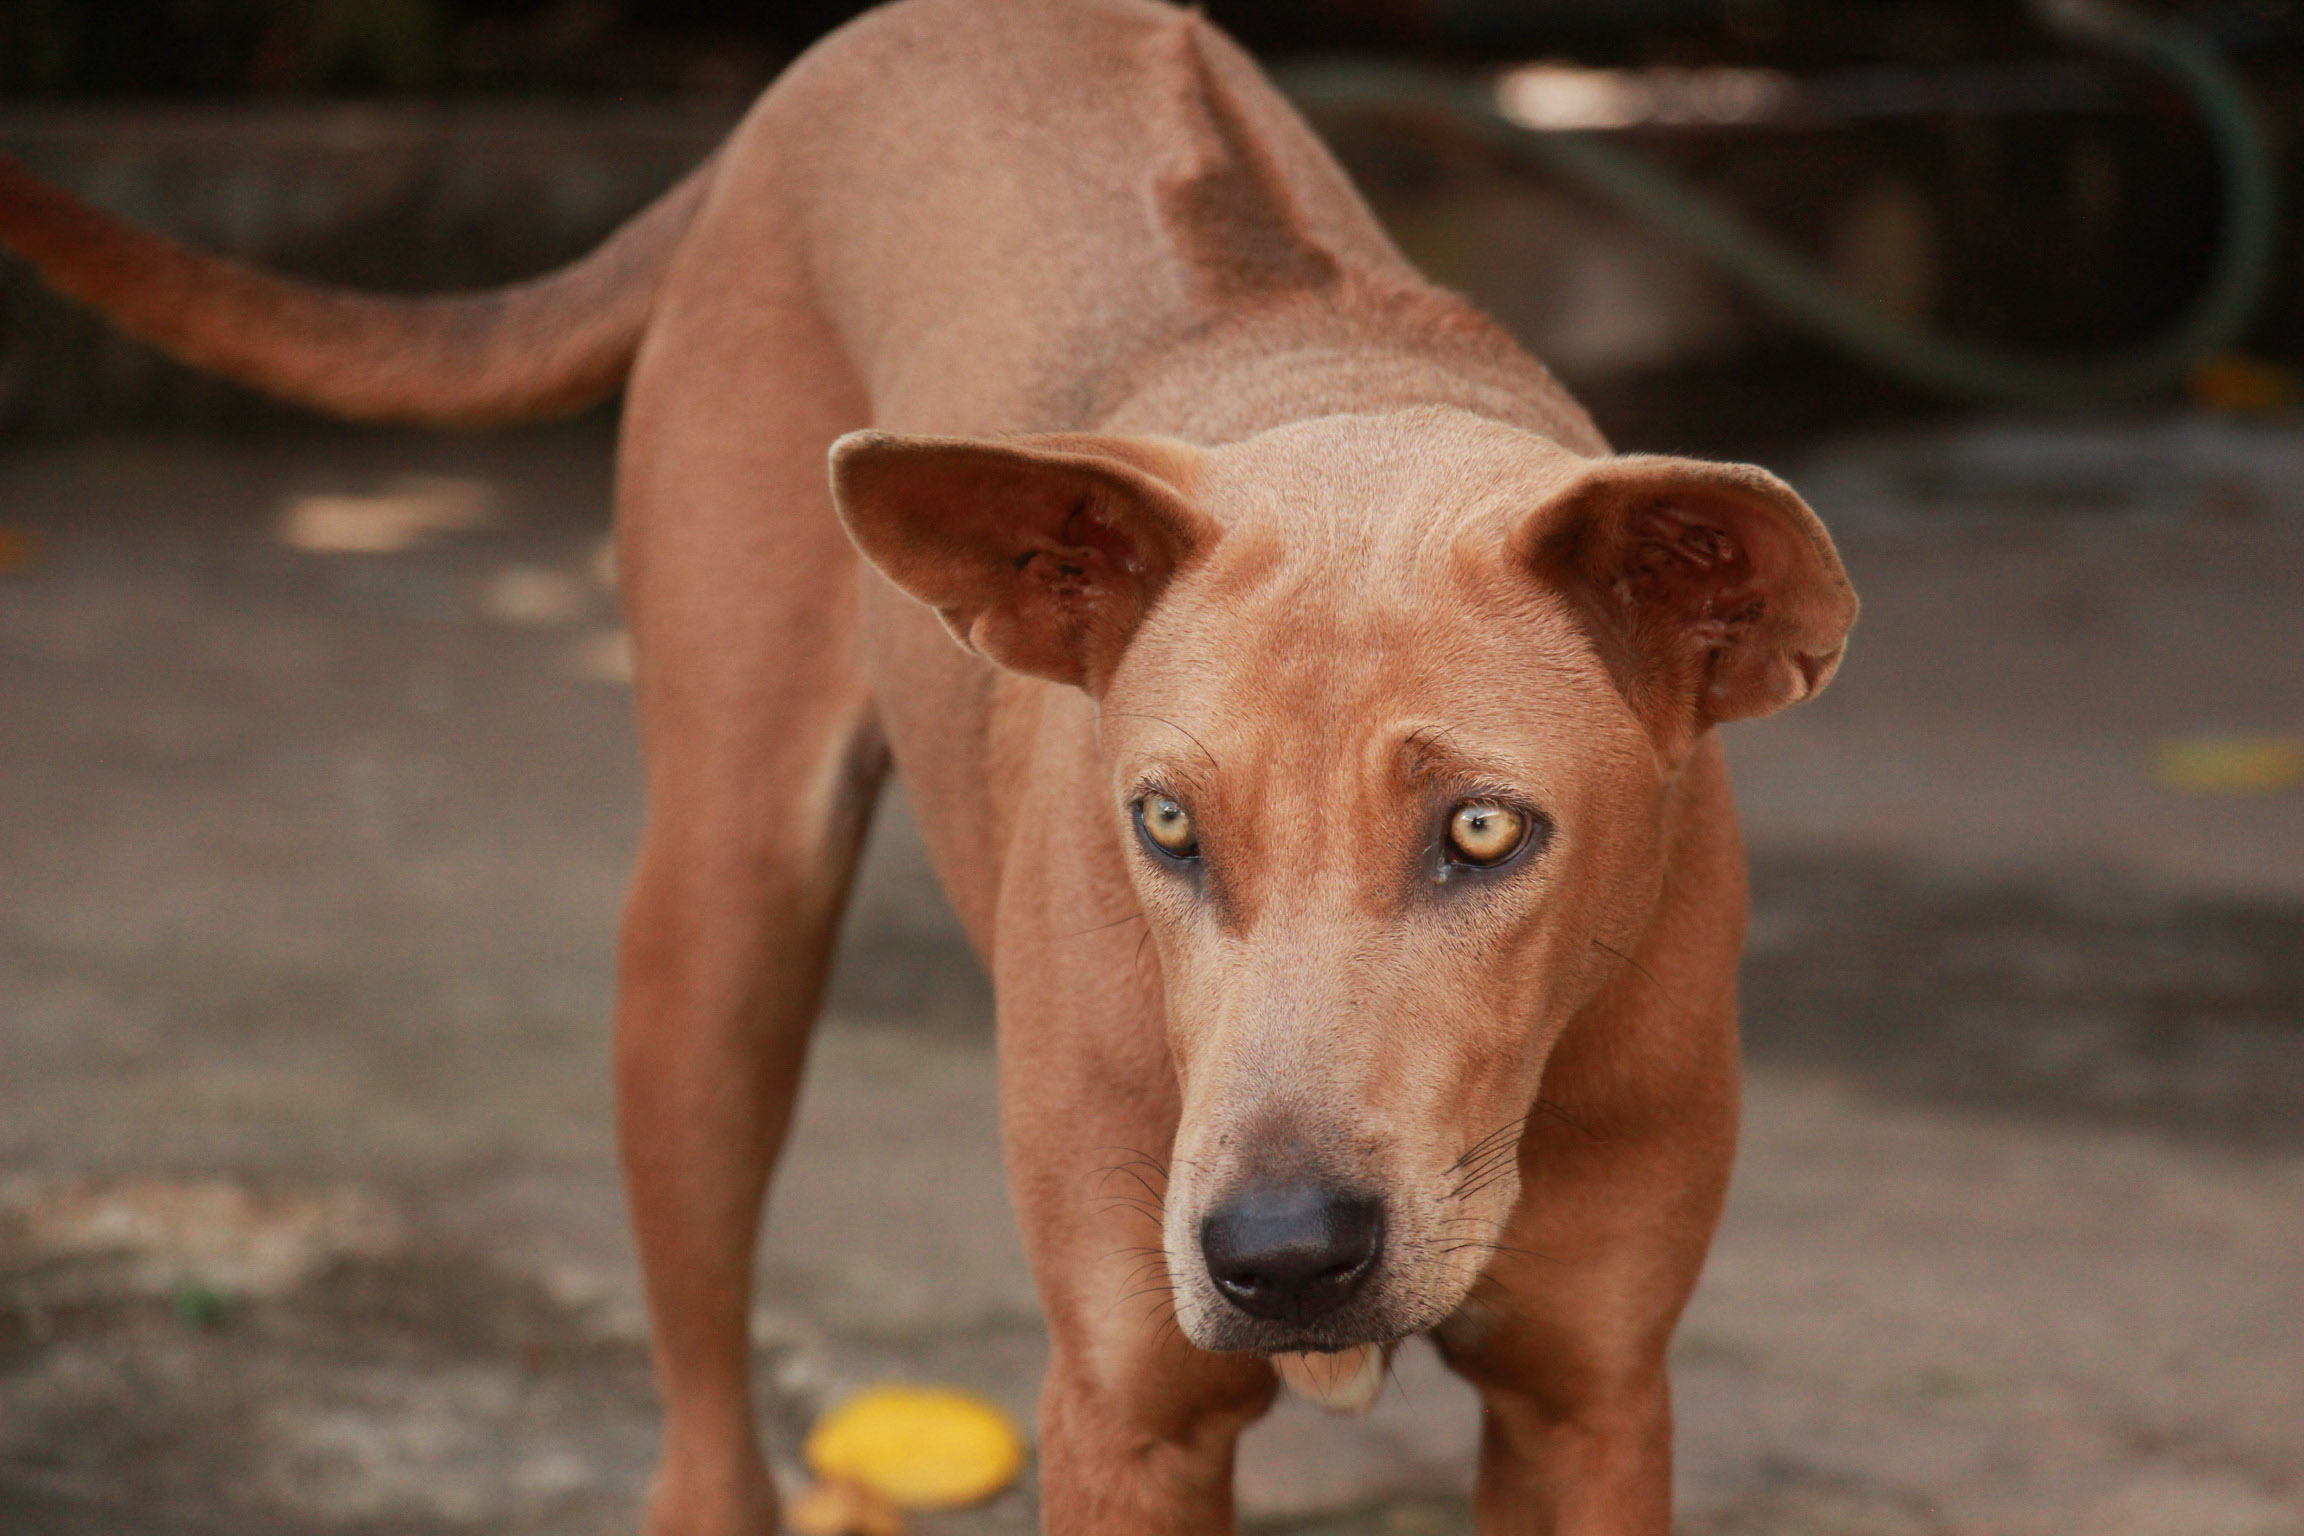 Phu Quocs are known for their sword-like ridgeback on the tops of their backs.